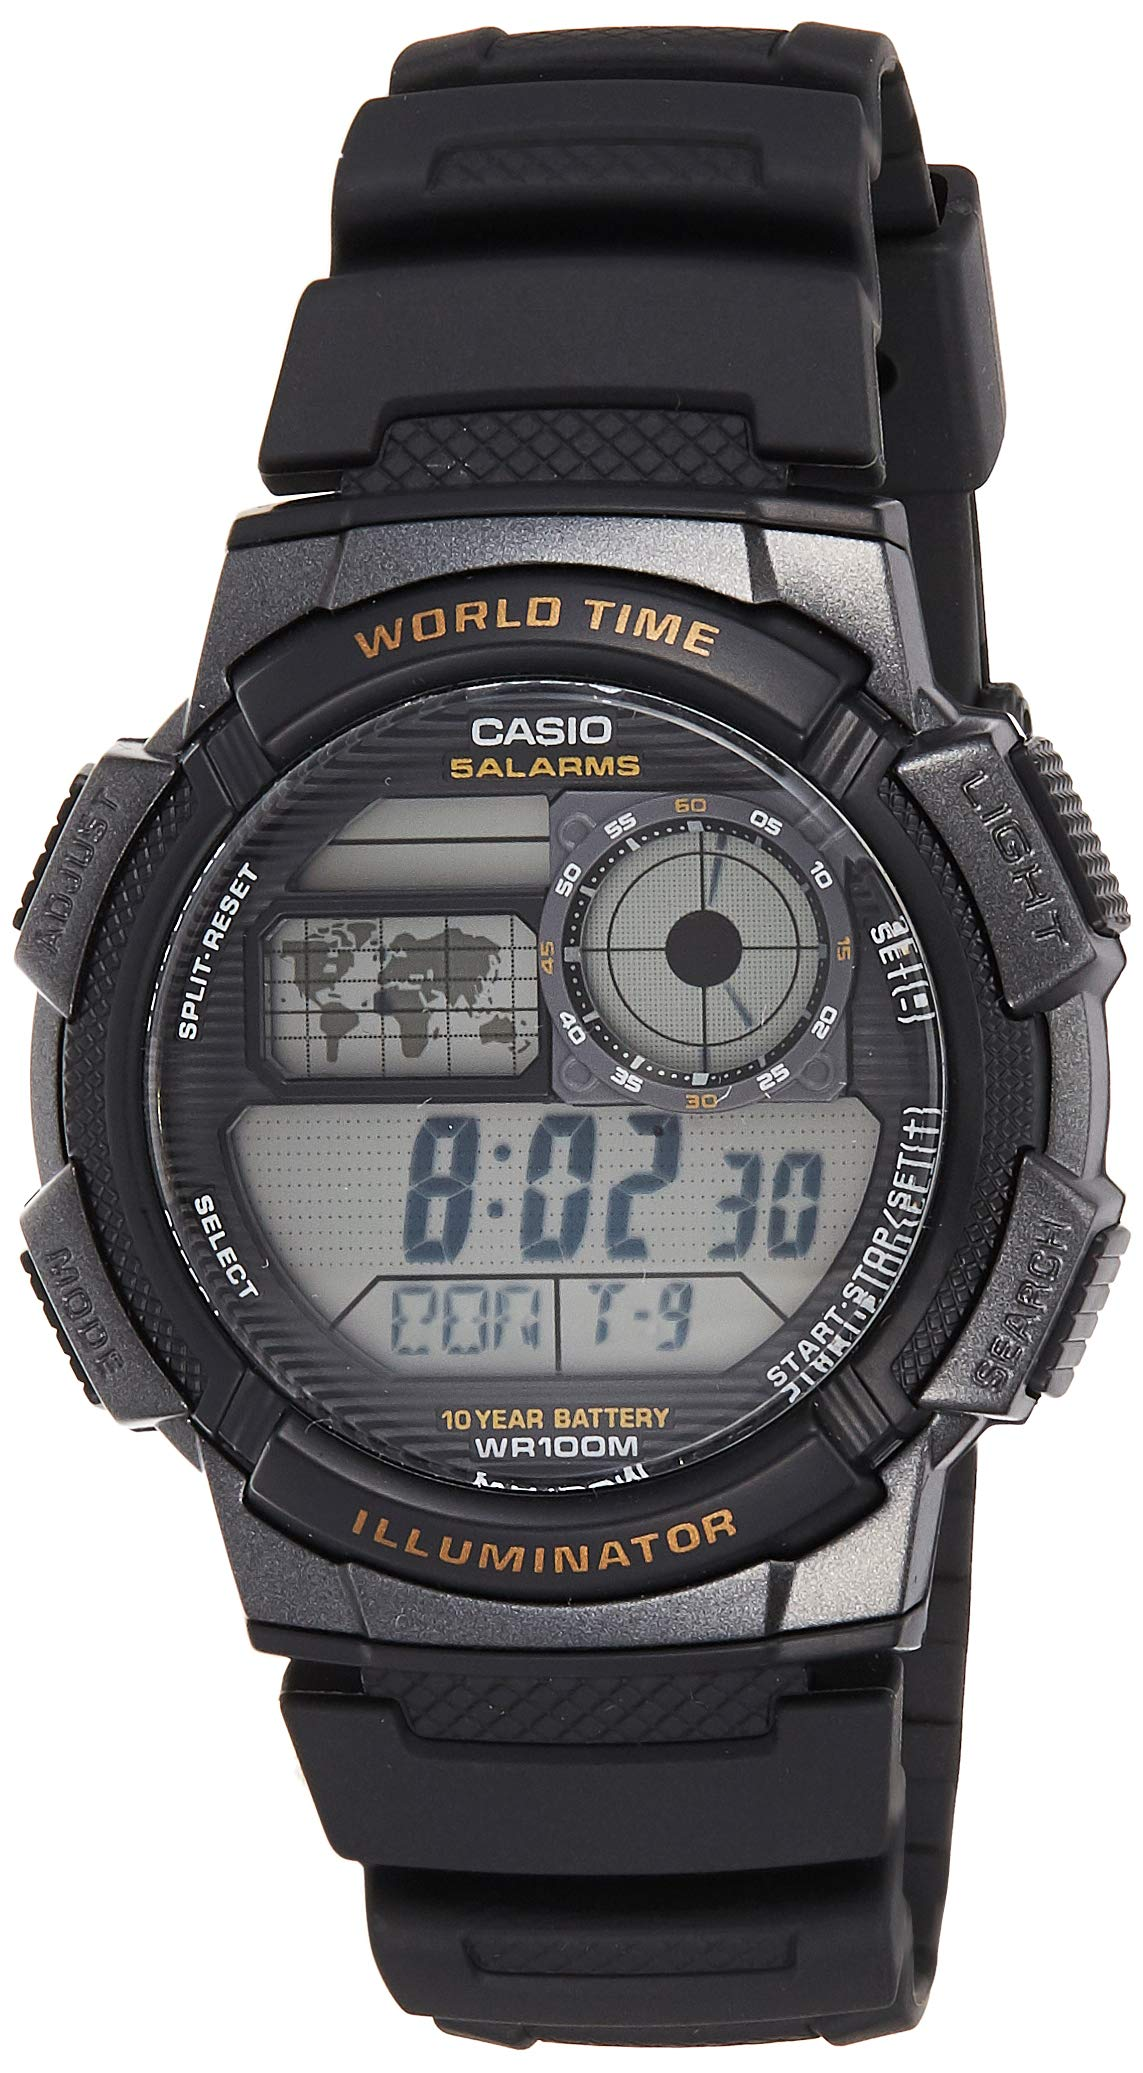 Casio Men's AE-1000W-1AVCF Resin Sport Watch with Black Band by Casio